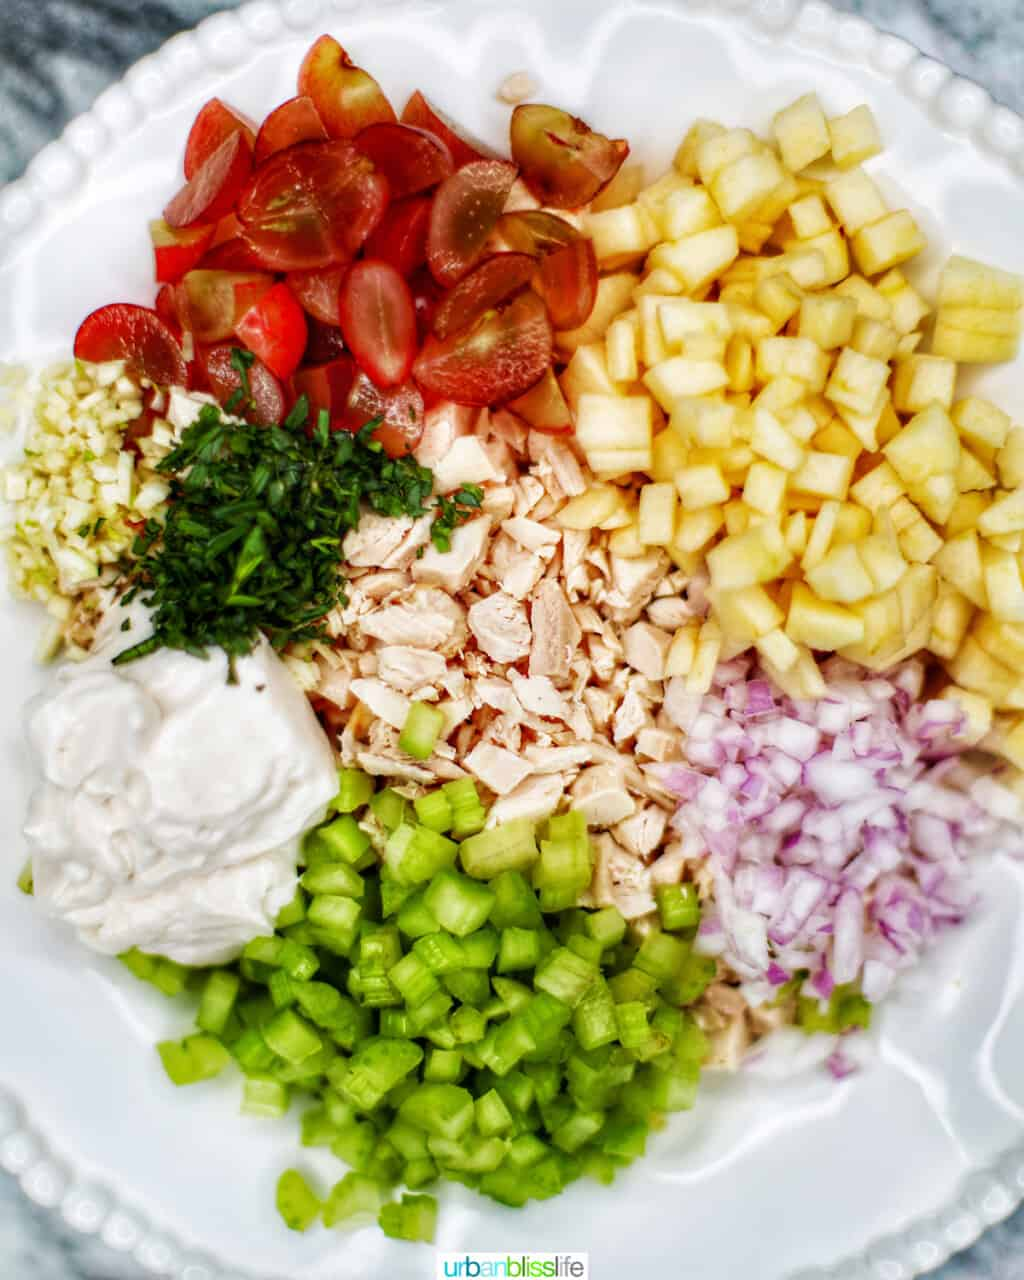 bowl of ingredients for chicken salad sandwiches